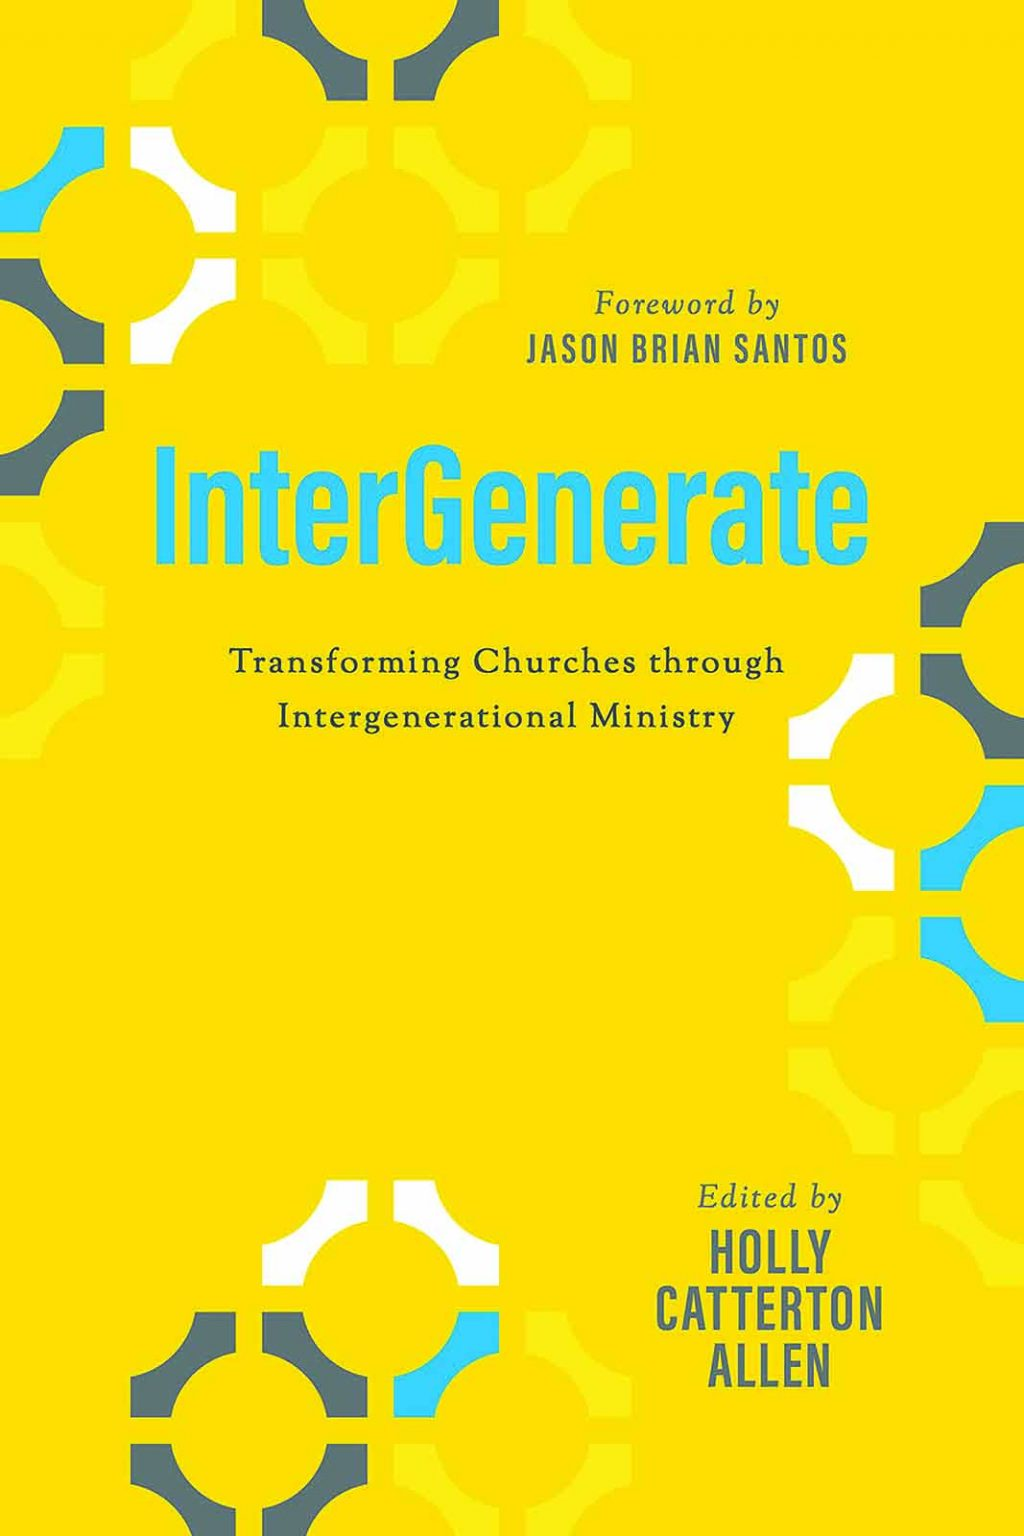 Holly Catterton Allen. InterGenerate: Transforming Churches through Intergenerational Ministry. Abilene, Texas: Abilene Christian University Press, 2018. 272 pages.